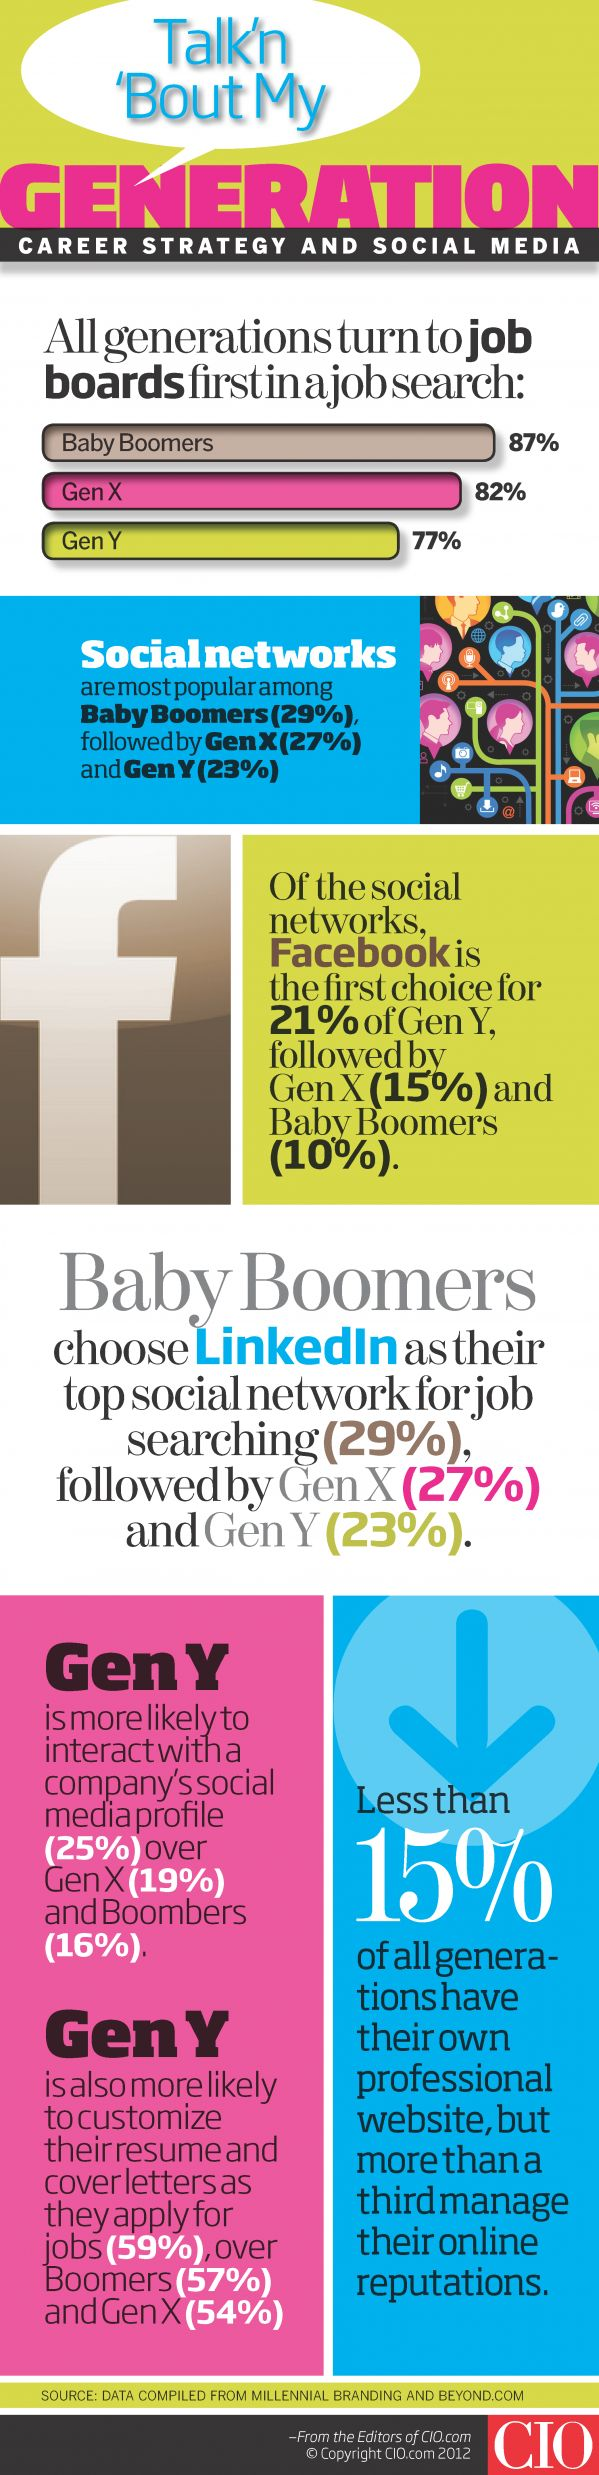 best images about career job related interview job seekers prefer job boards to linkedin and google infographic